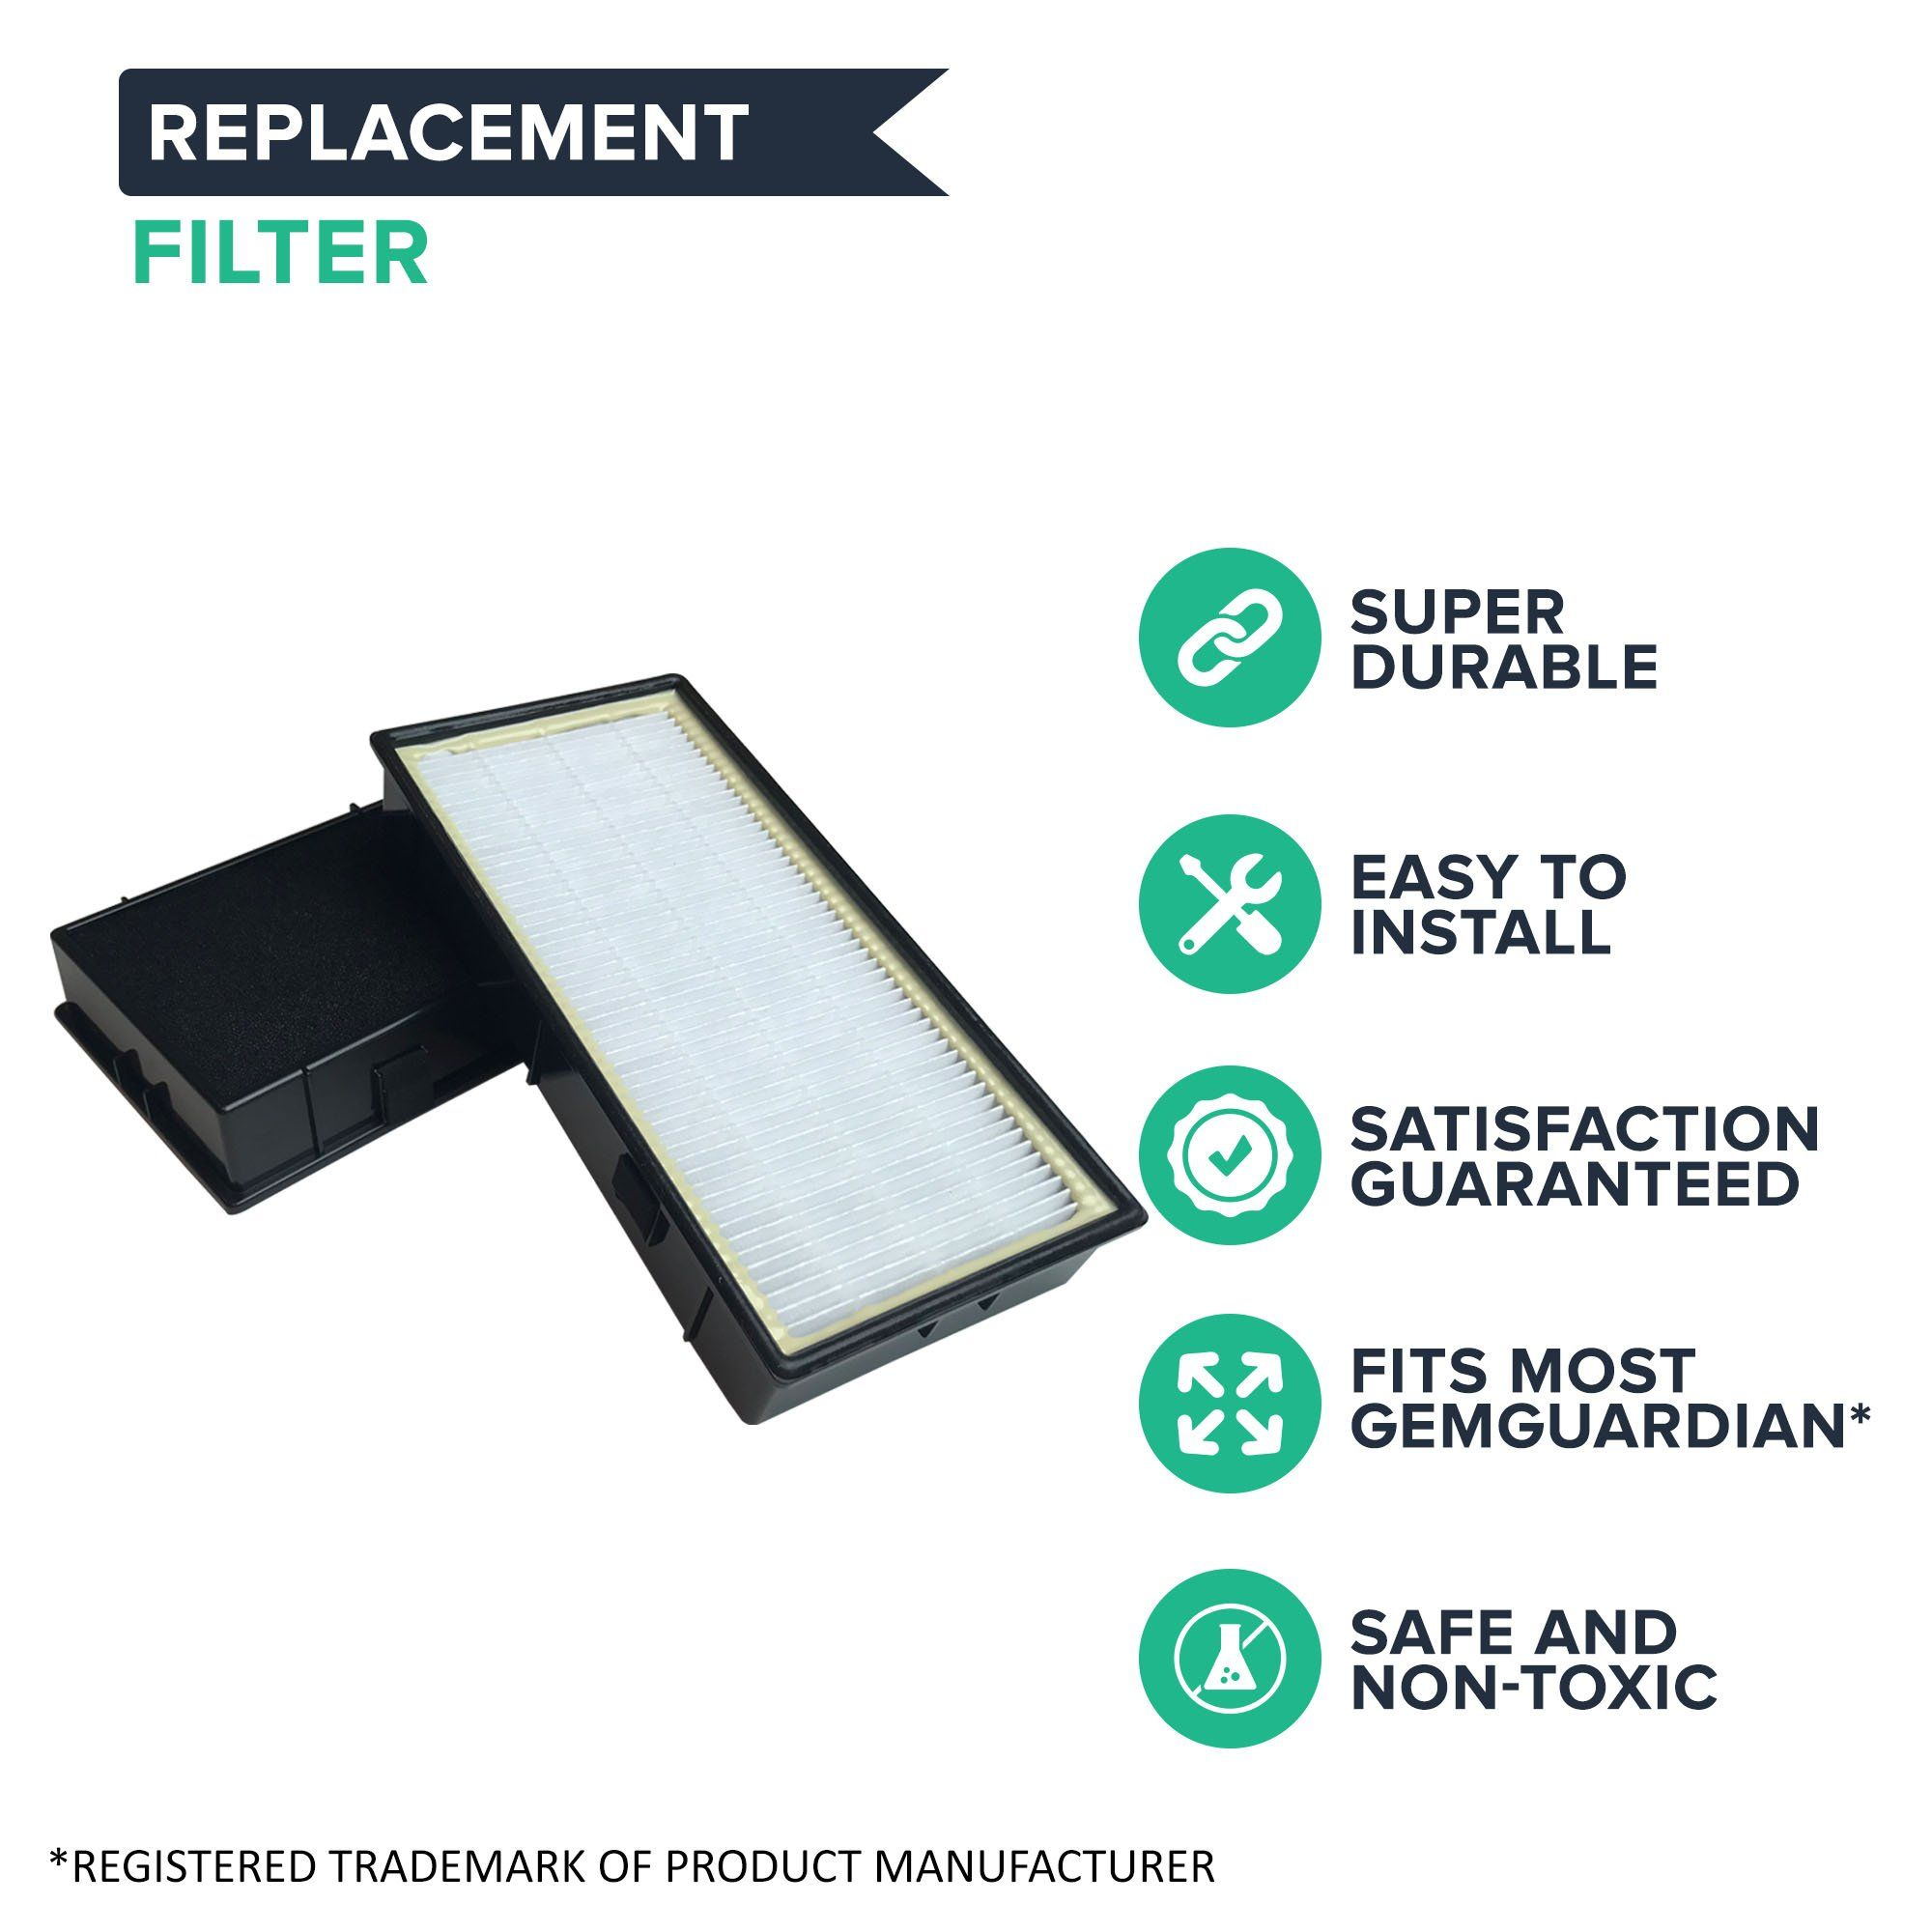 Think Crucial 4 Replacement GermGuardian C Pet Filter Fits